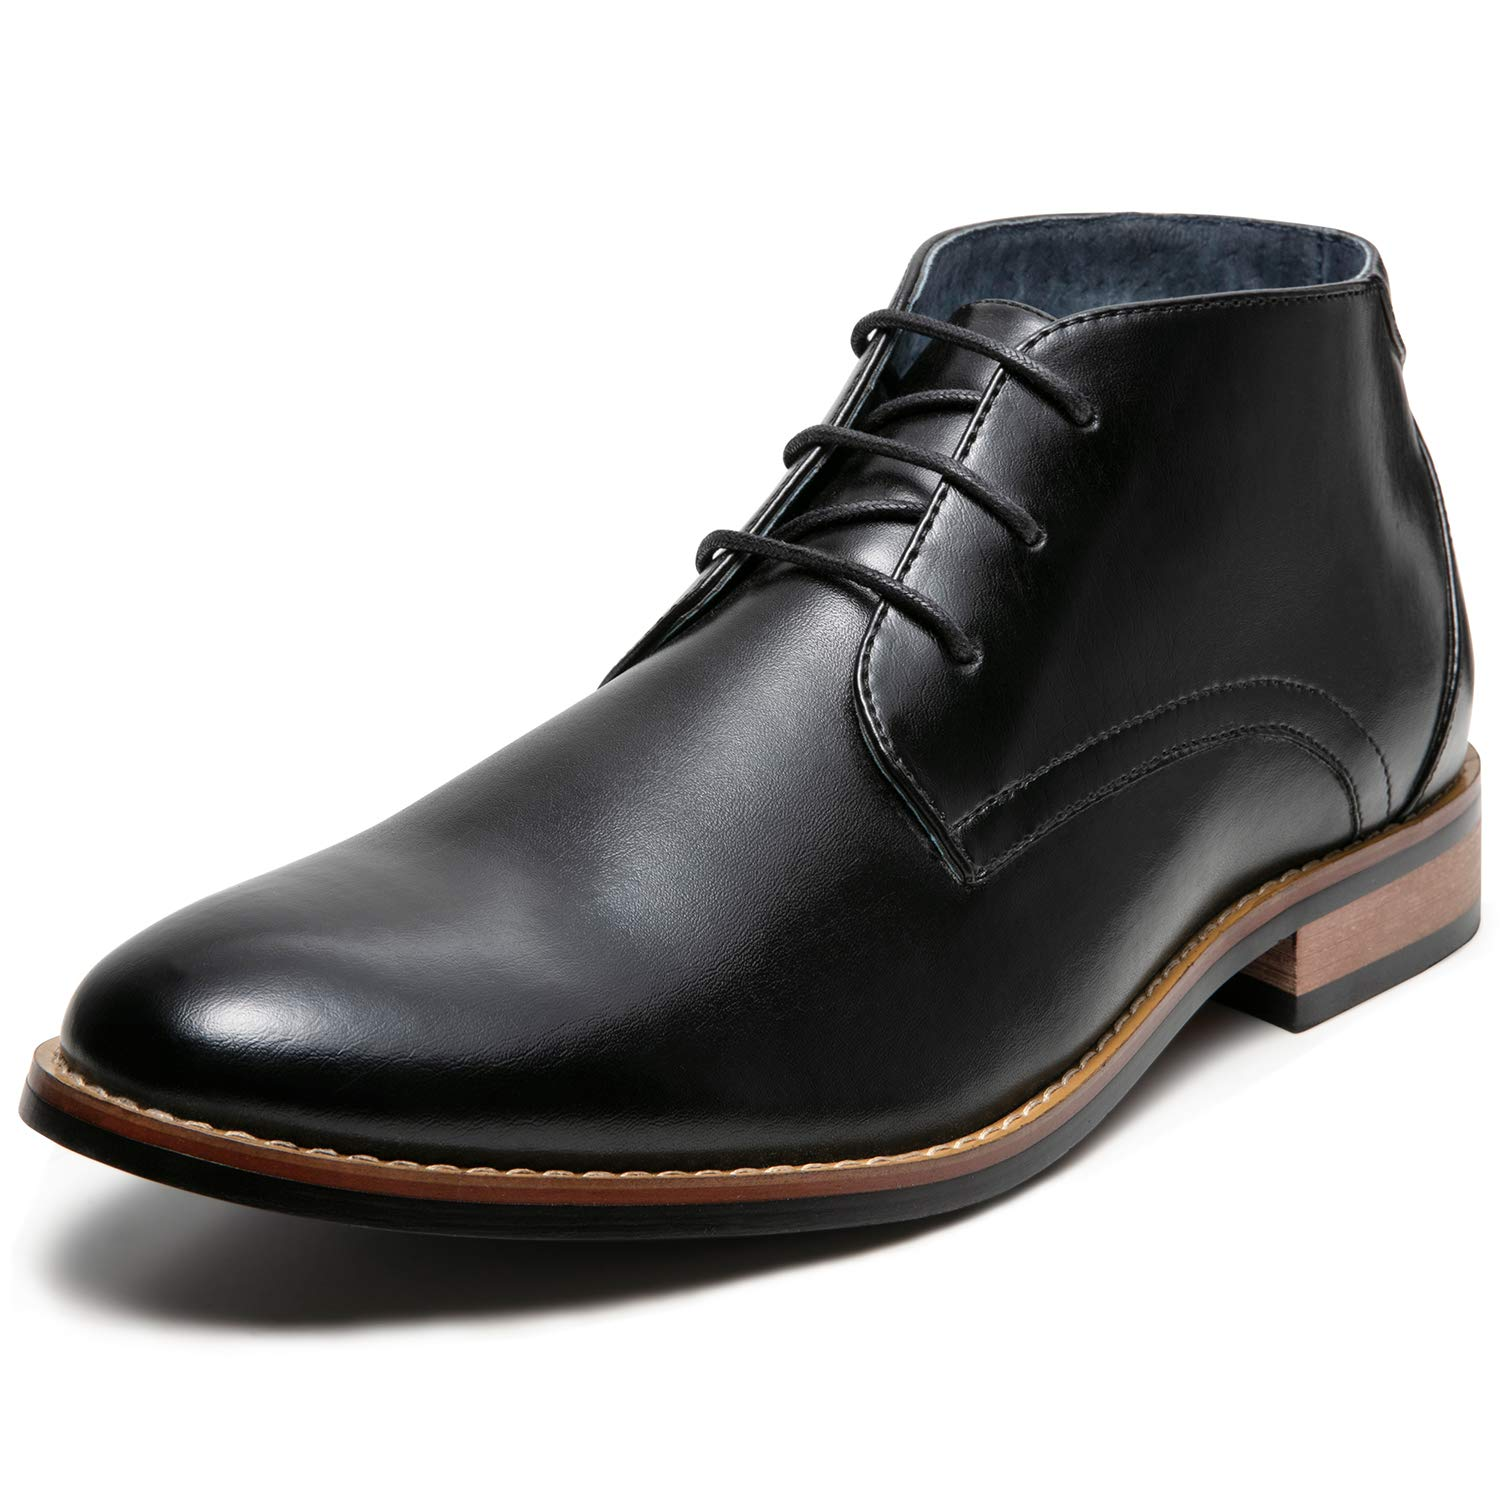 60s Mens Shoes | 70s Mens shoes – Platforms, Boots ZRIANG Mens Oxford Dress Leather Lined Round Toe Angle Boots $25.99 AT vintagedancer.com